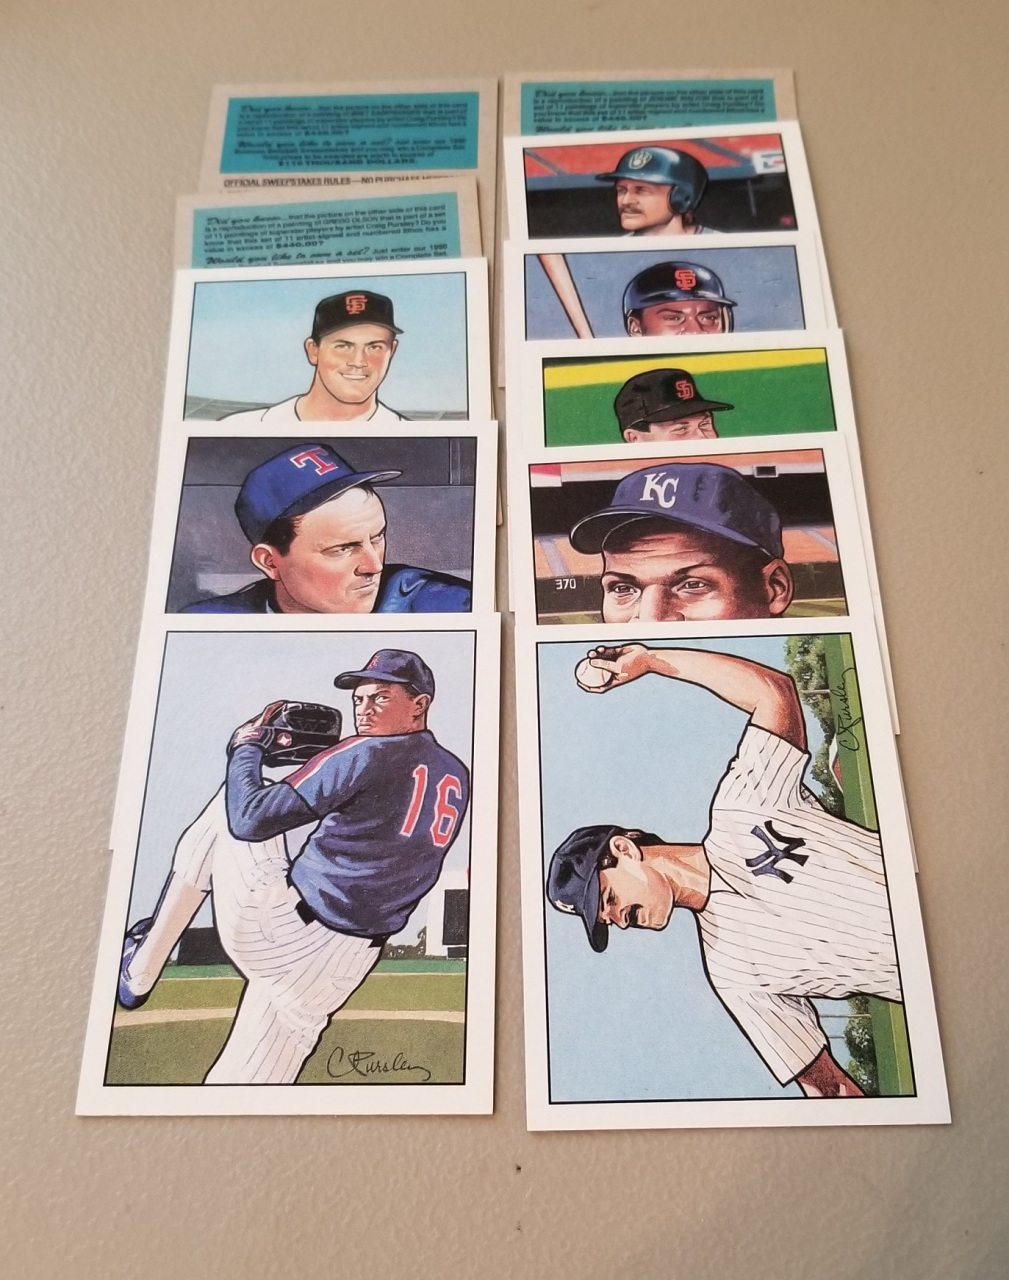 1990 1994 Baseball Trading Card Sets For Sale Baseball Cards By